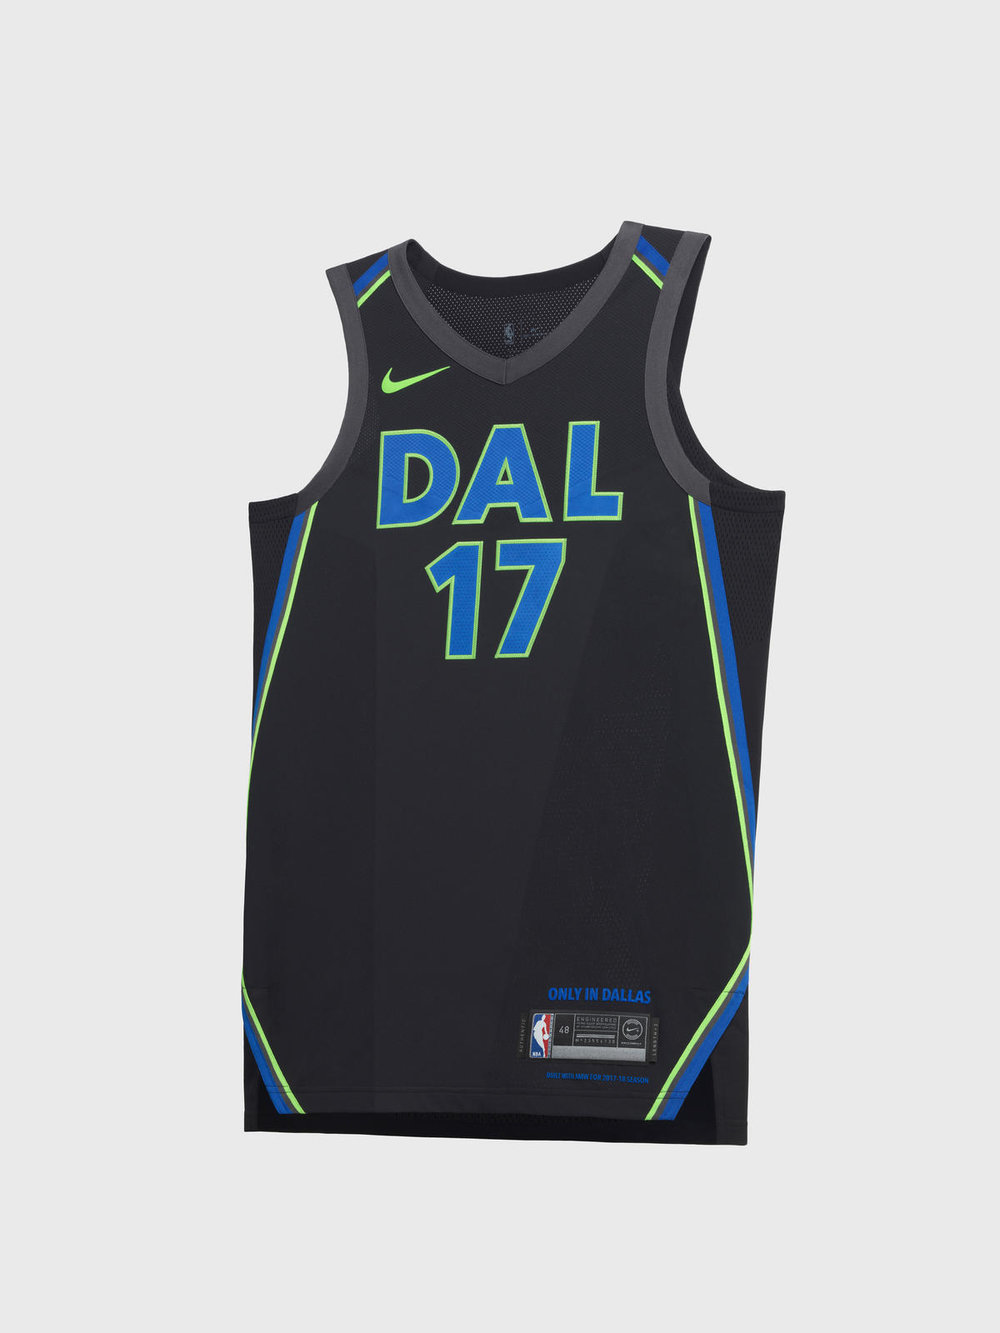 Nike_NBA_City_Edition_Uniform_Dallas_Mavericks_0155_native_1600.jpeg